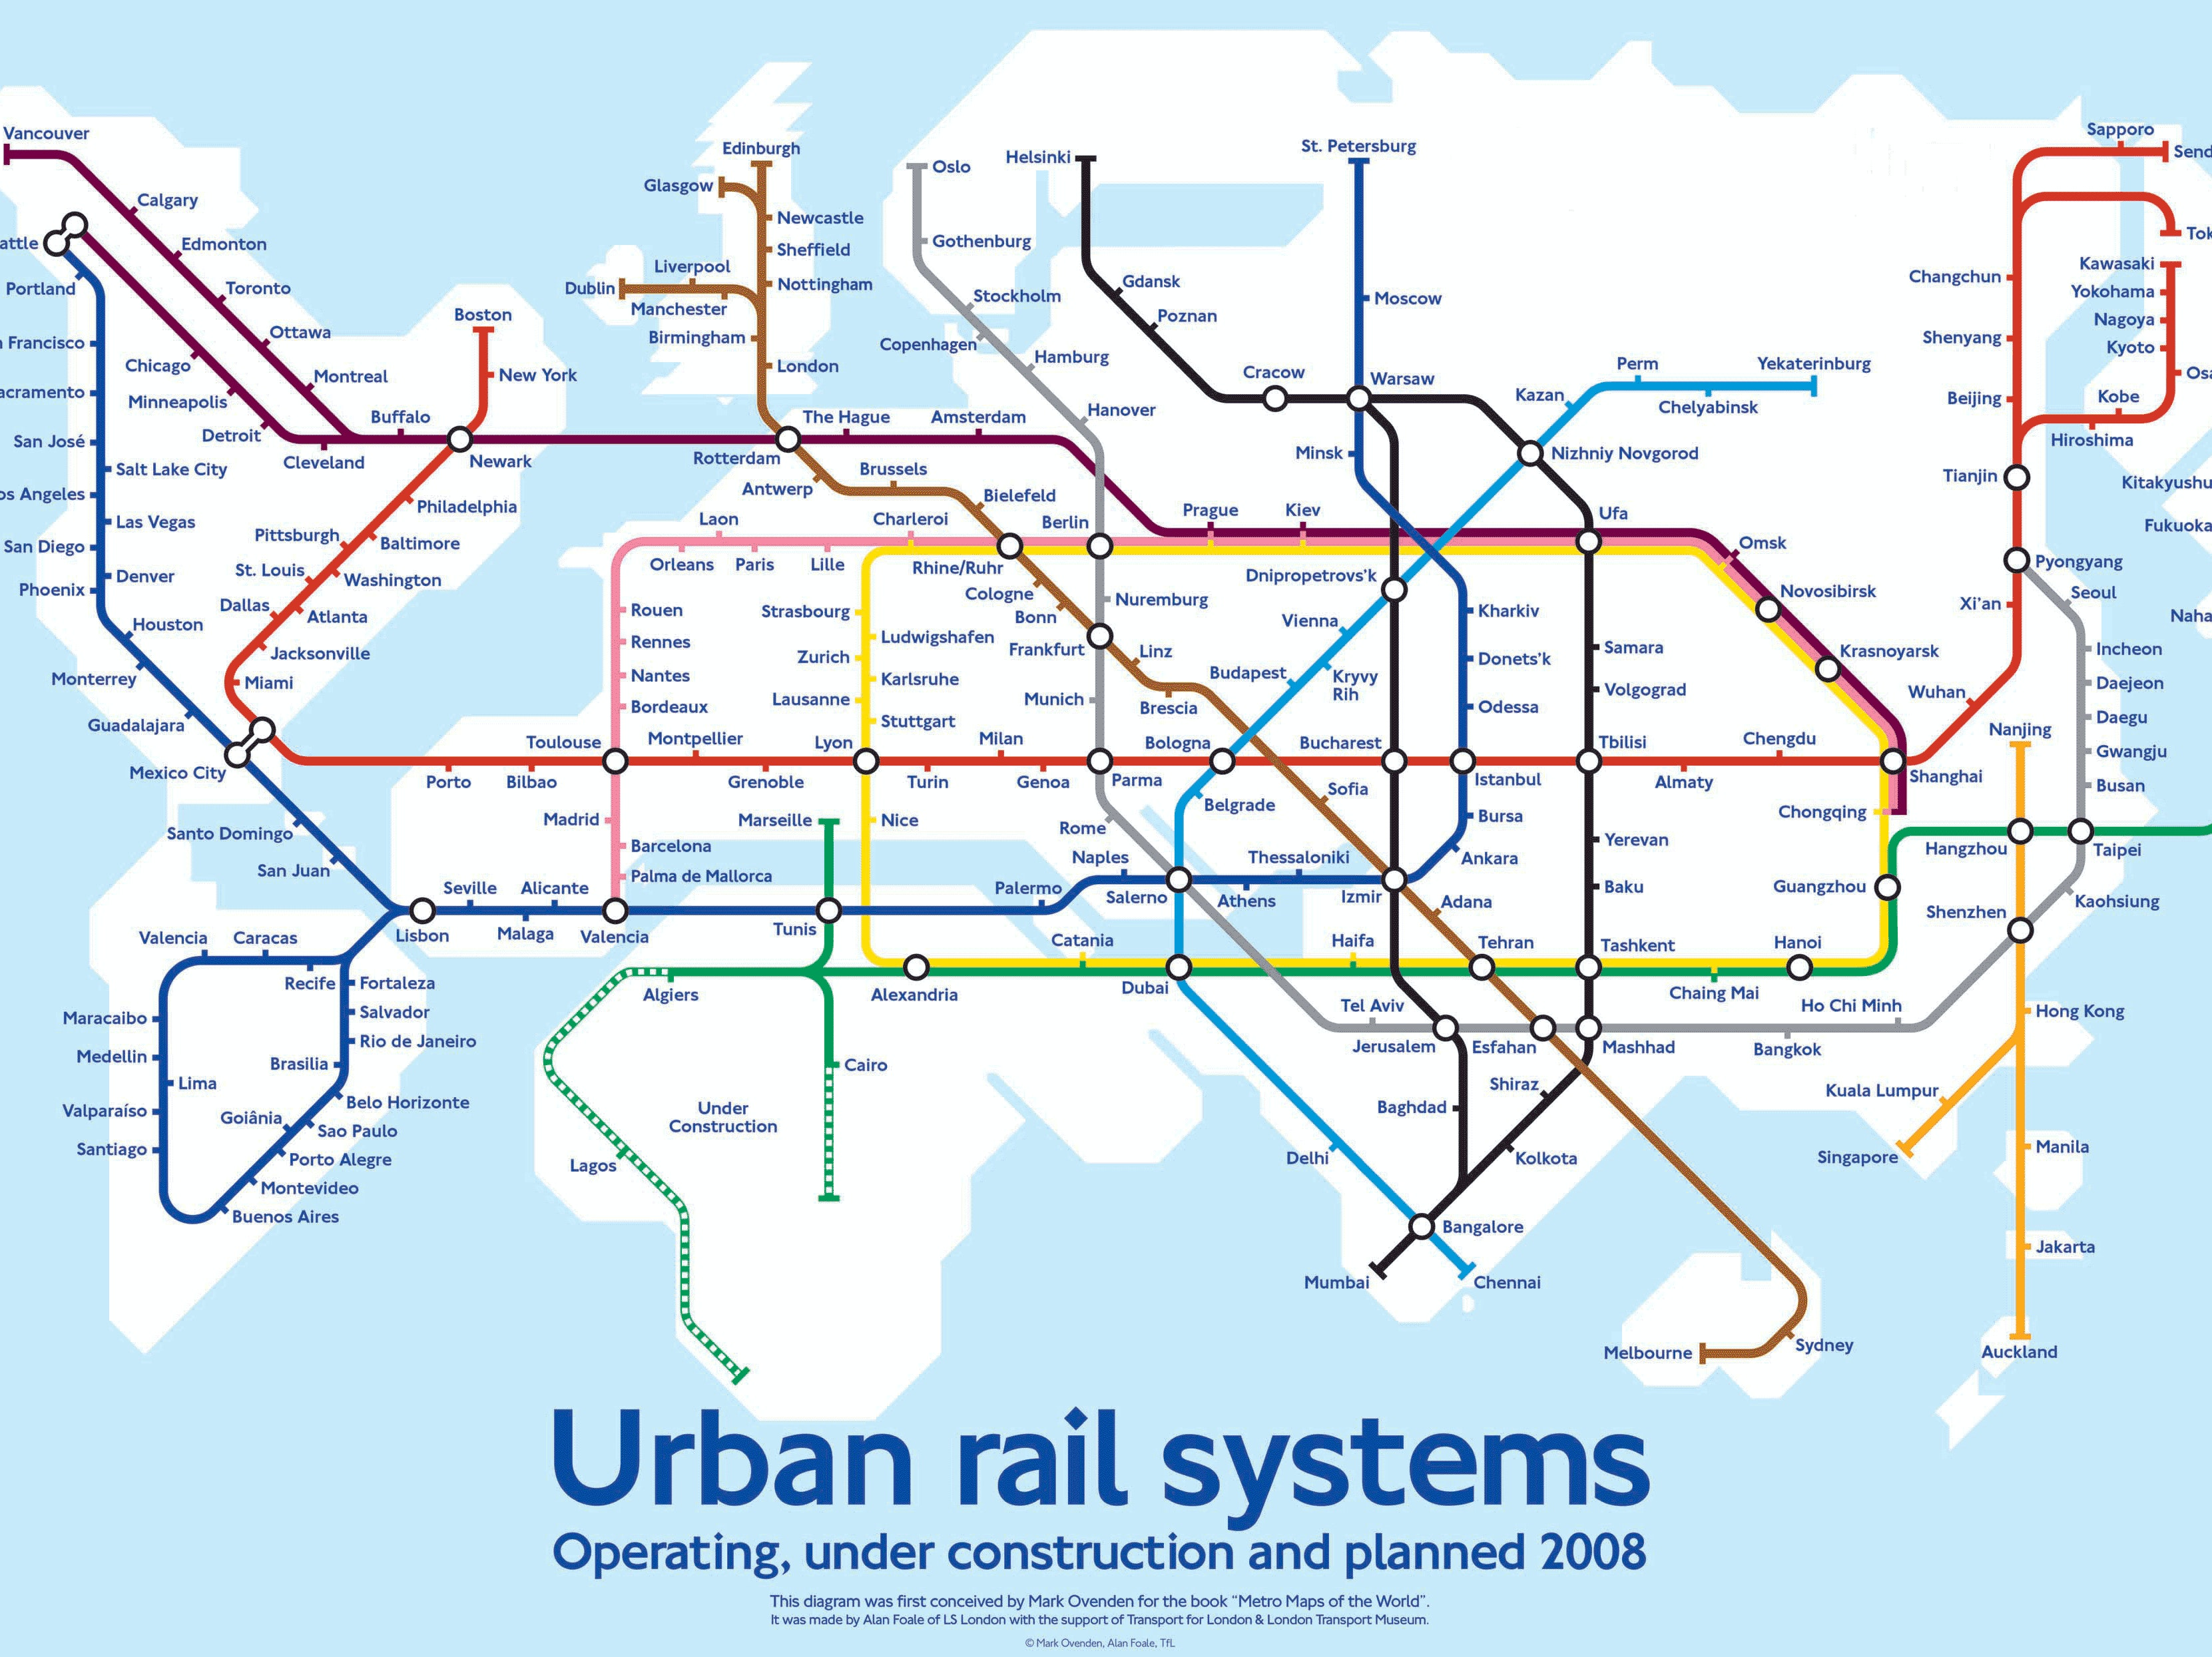 World Subway Map Shows What a Hyperloop-Powered Future May Look Like